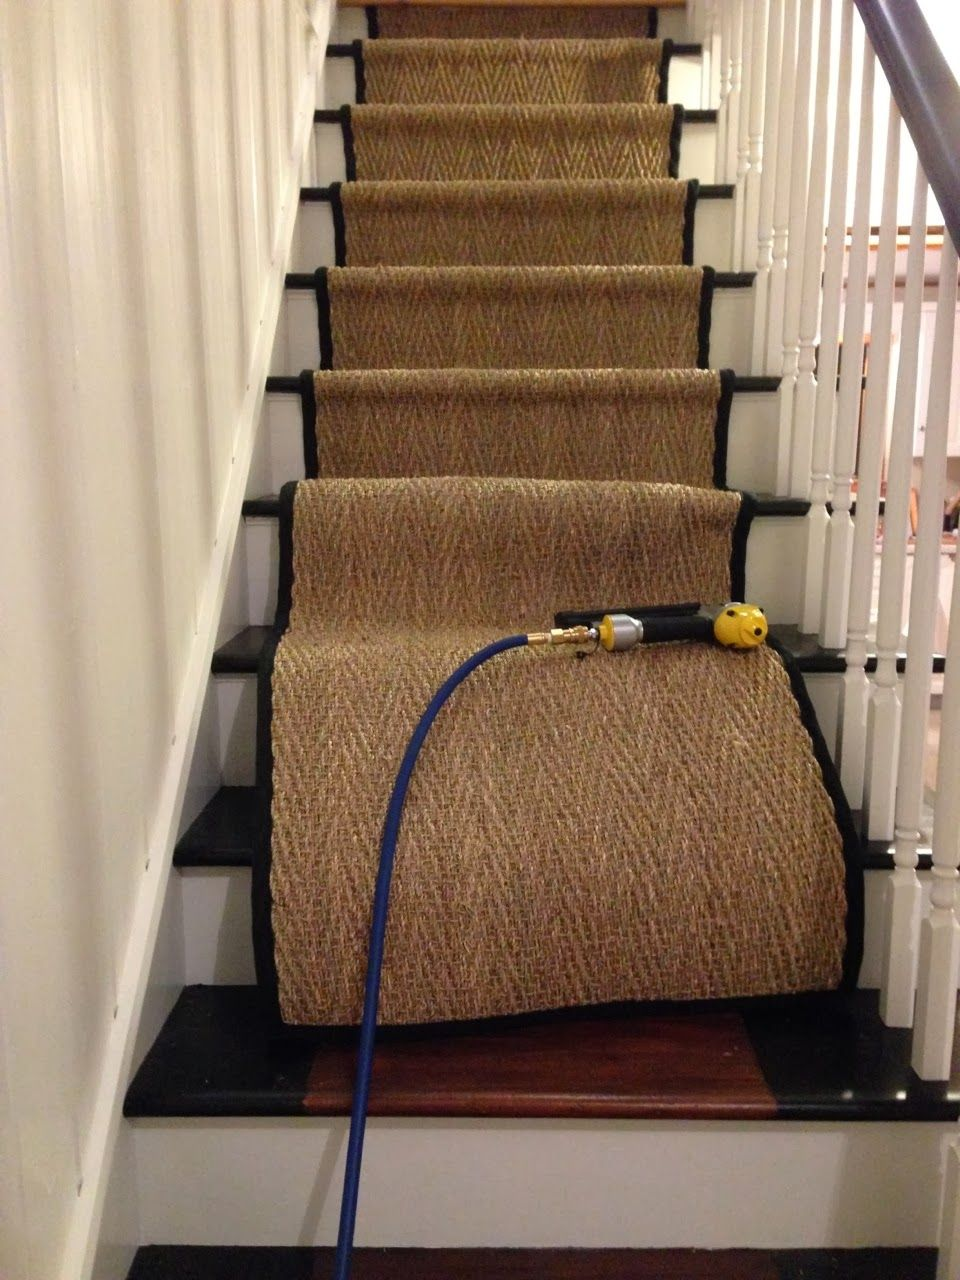 Superb Installing Seagrass Safavieh Stair Runner   Google Search What I Like About  This Is The Black